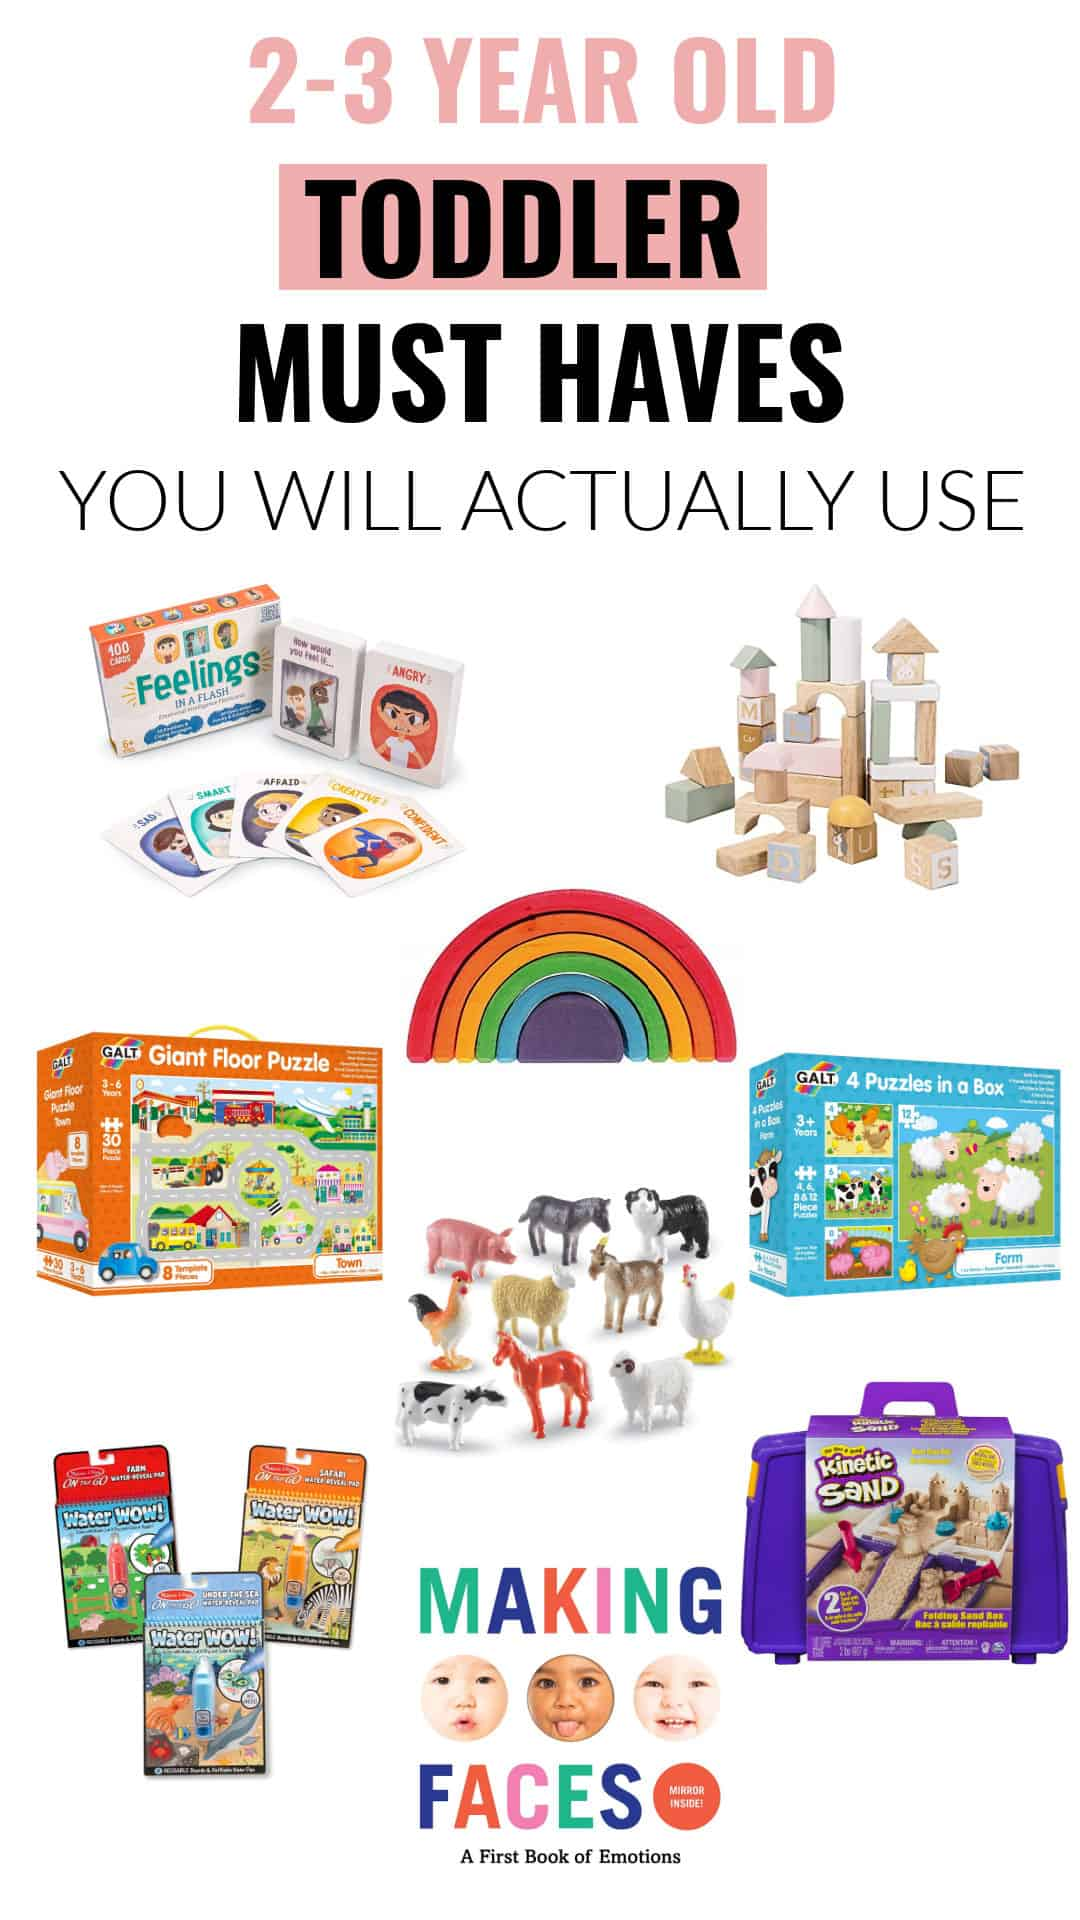 Toddler must have products you will actually use - 2 Year Old Toddler